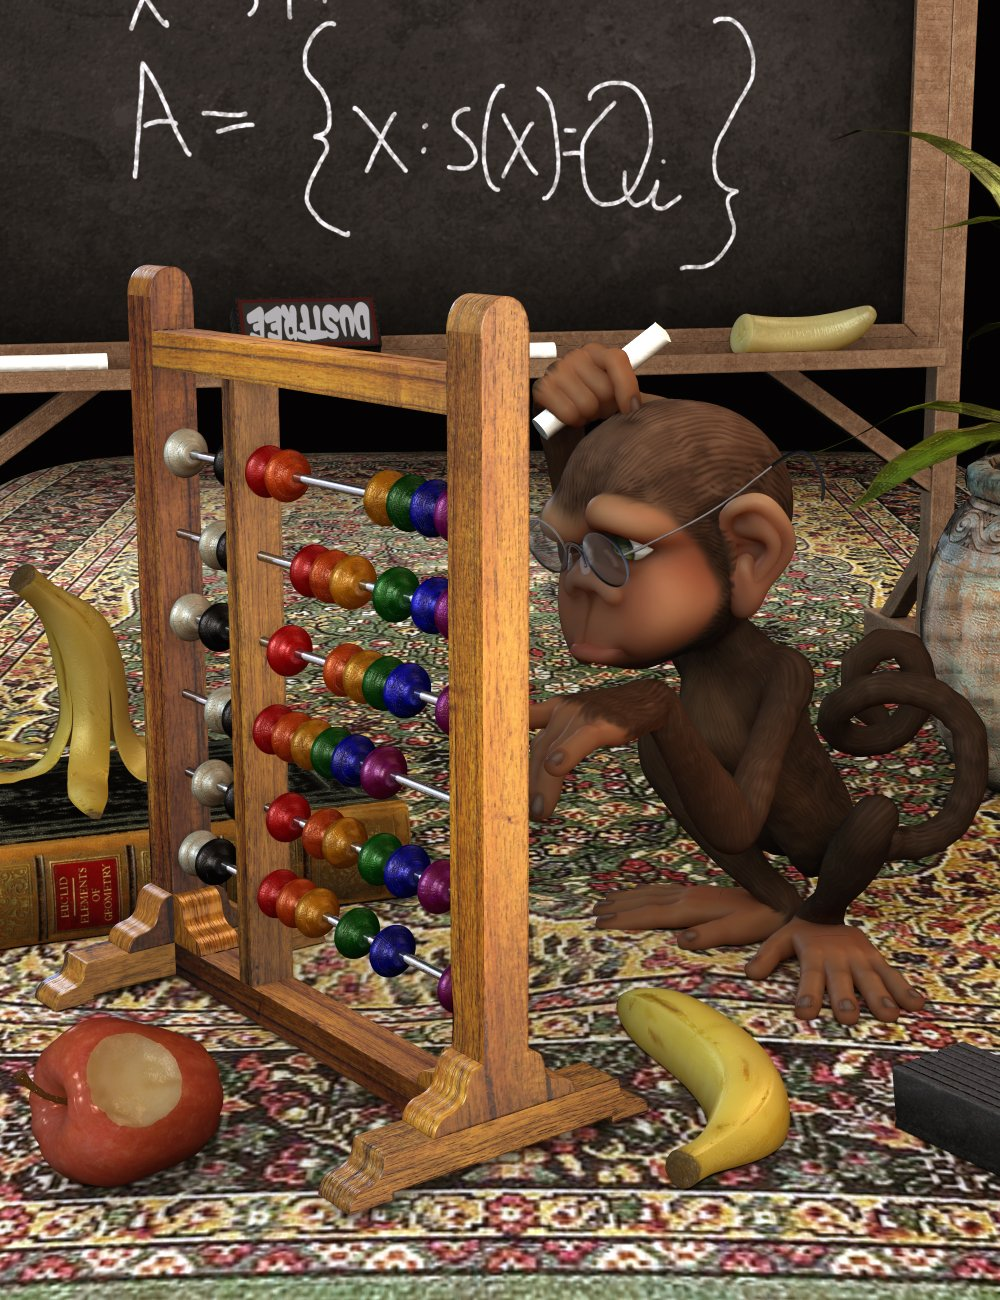 Abacus by: Thorne, 3D Models by Daz 3D